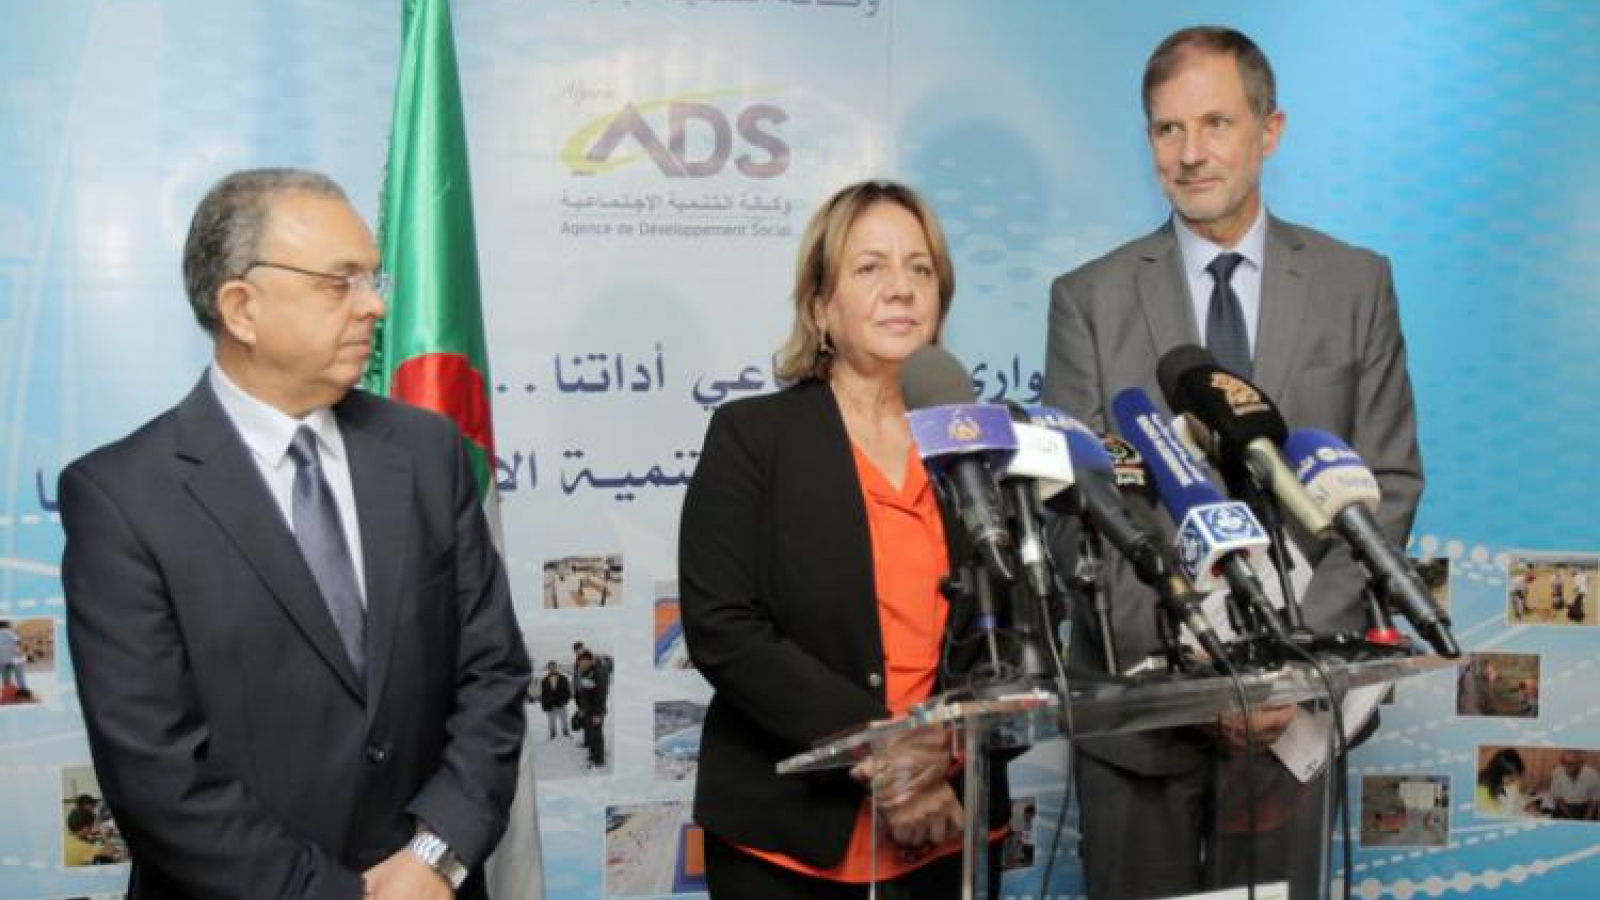 Algeria: Launch of a programme financed by the EU for supporting local sustainable development